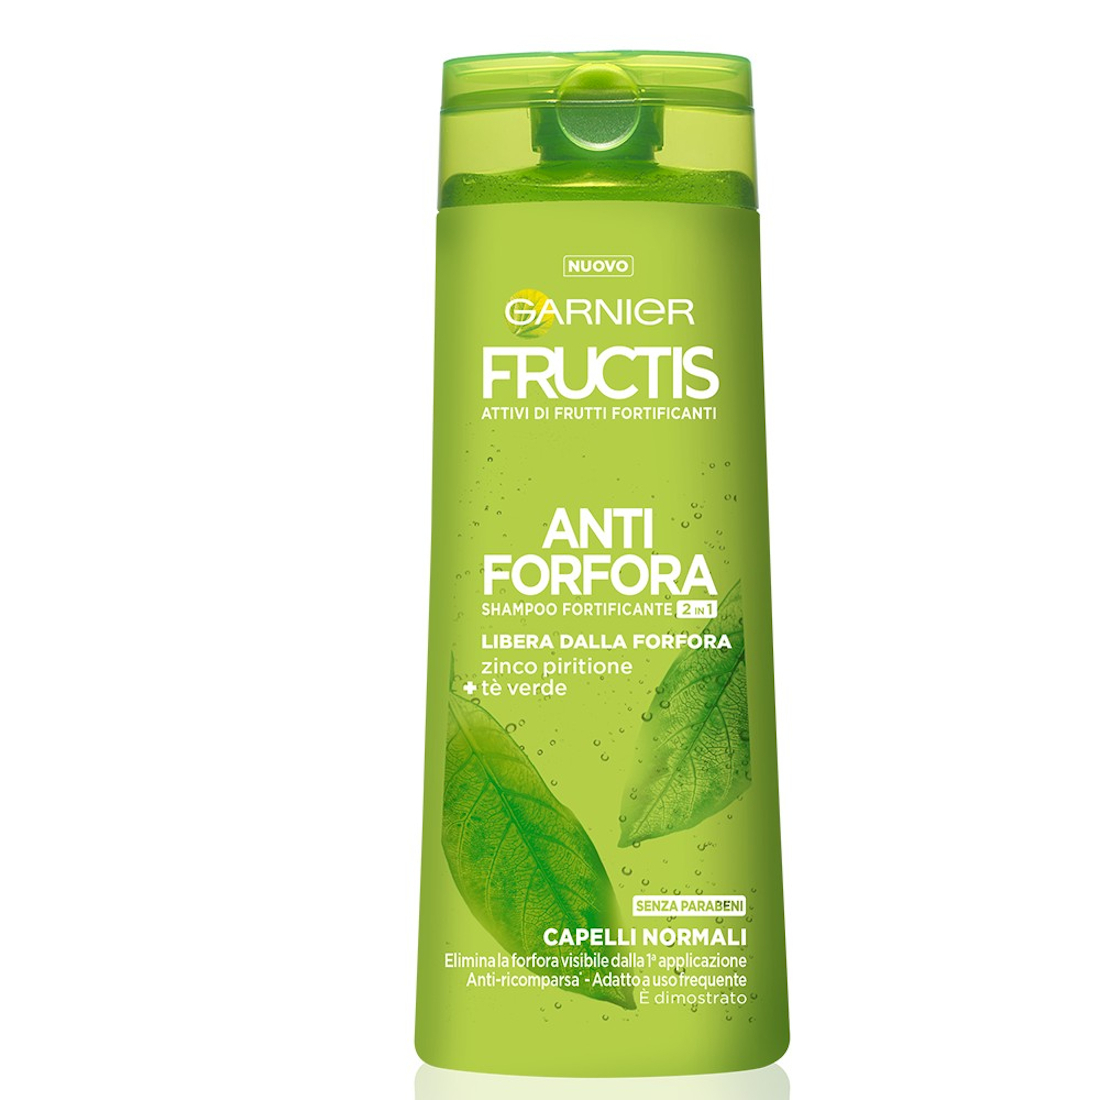 FRUCTIS Shampoo Fortificante Antiforfora 2in1 250ml